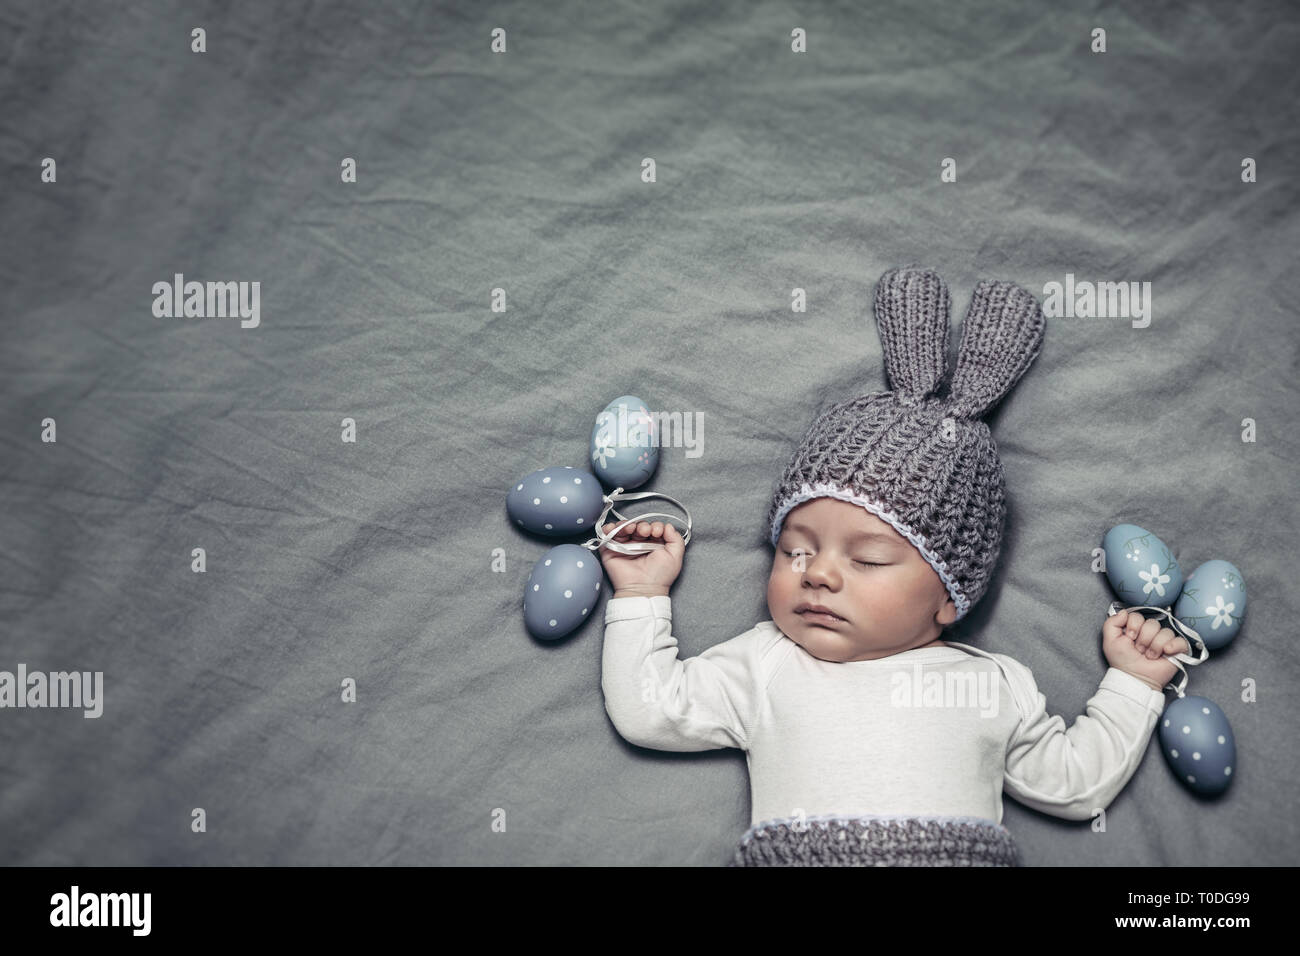 ff331dd88eb2 Portrait of an adorable newborn child dressed in a knitted costume of an Easter  bunny with